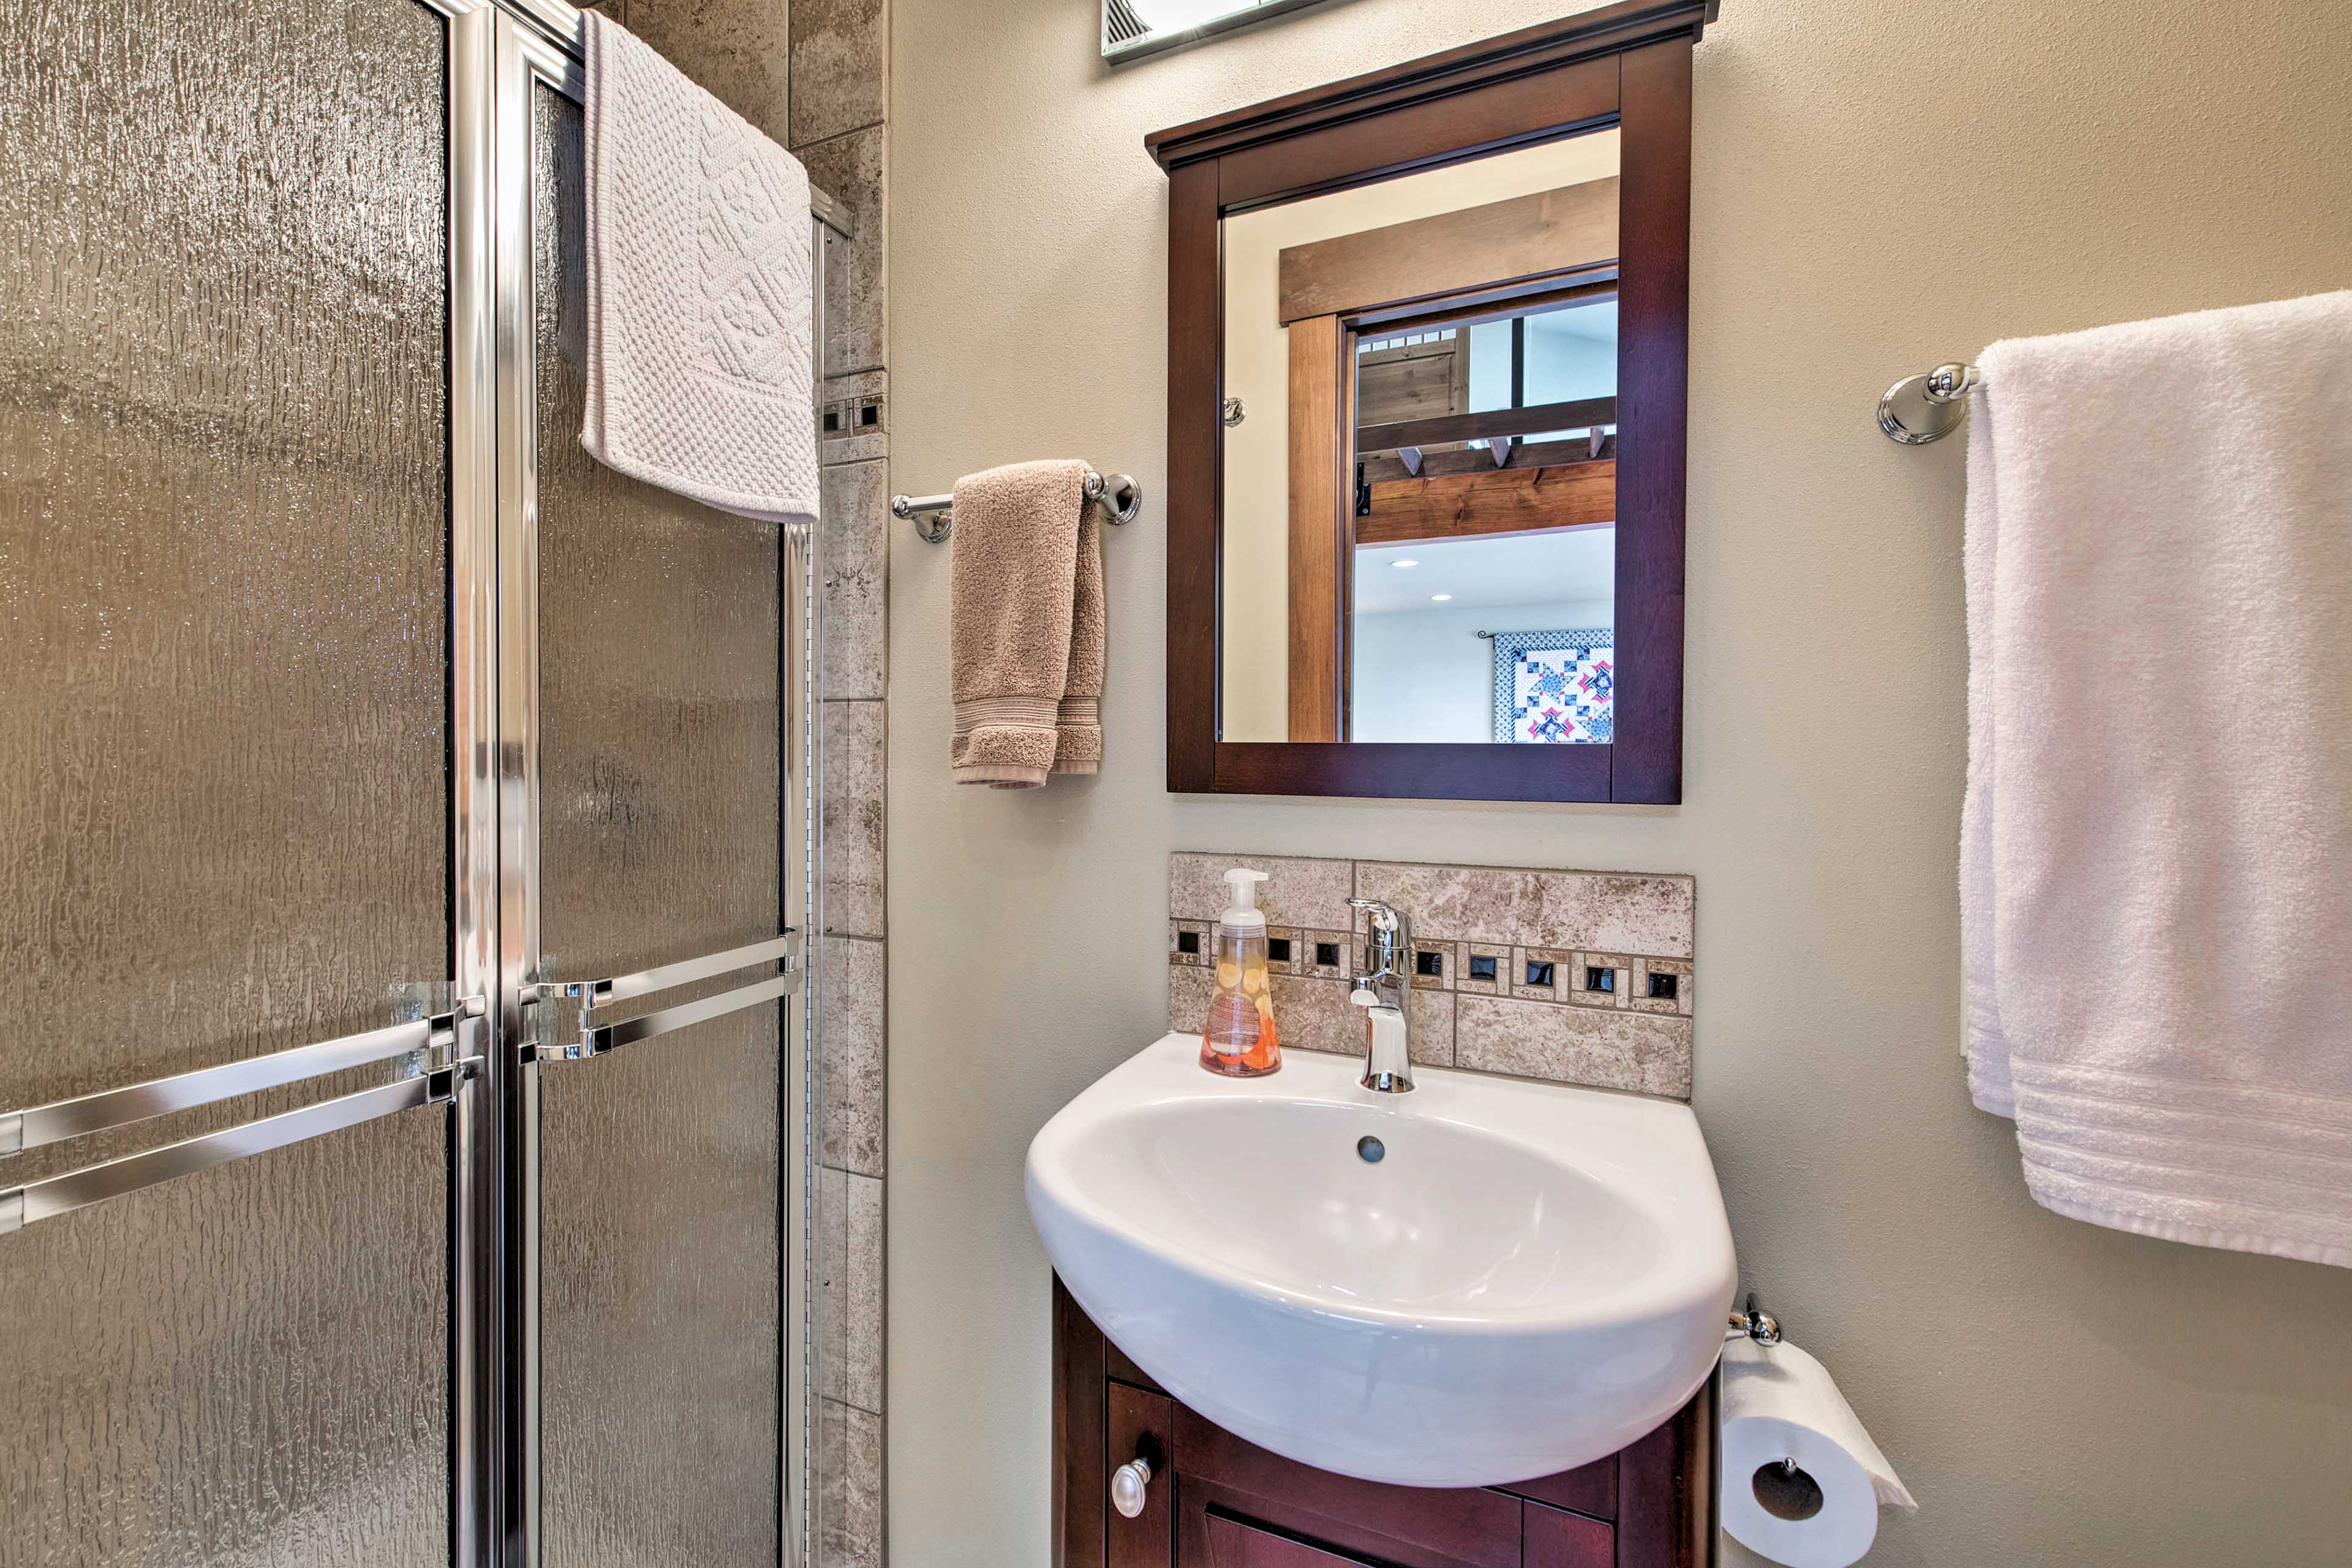 The second full bathroom is located inside the first detached suite of the house